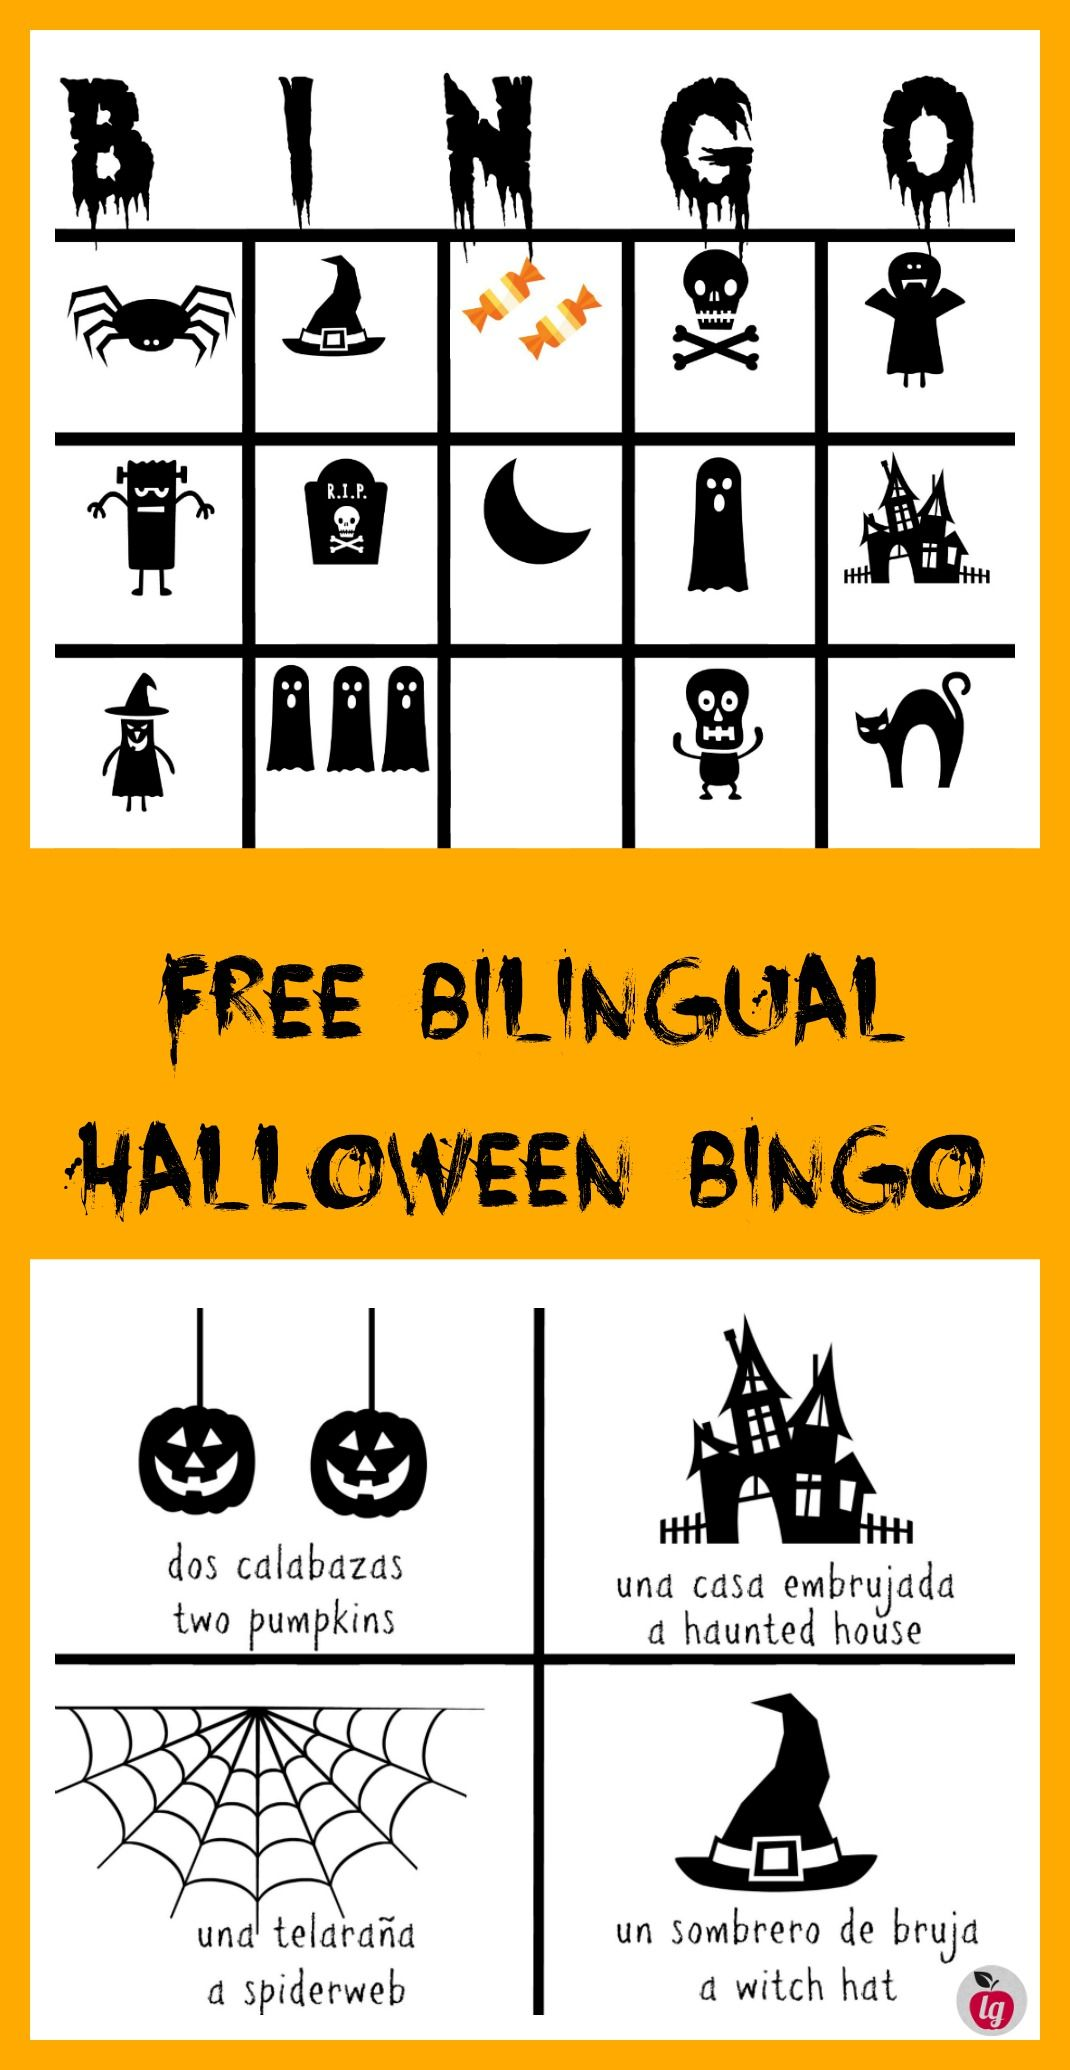 Free Printable Bilingual Halloween Bingo game (With images